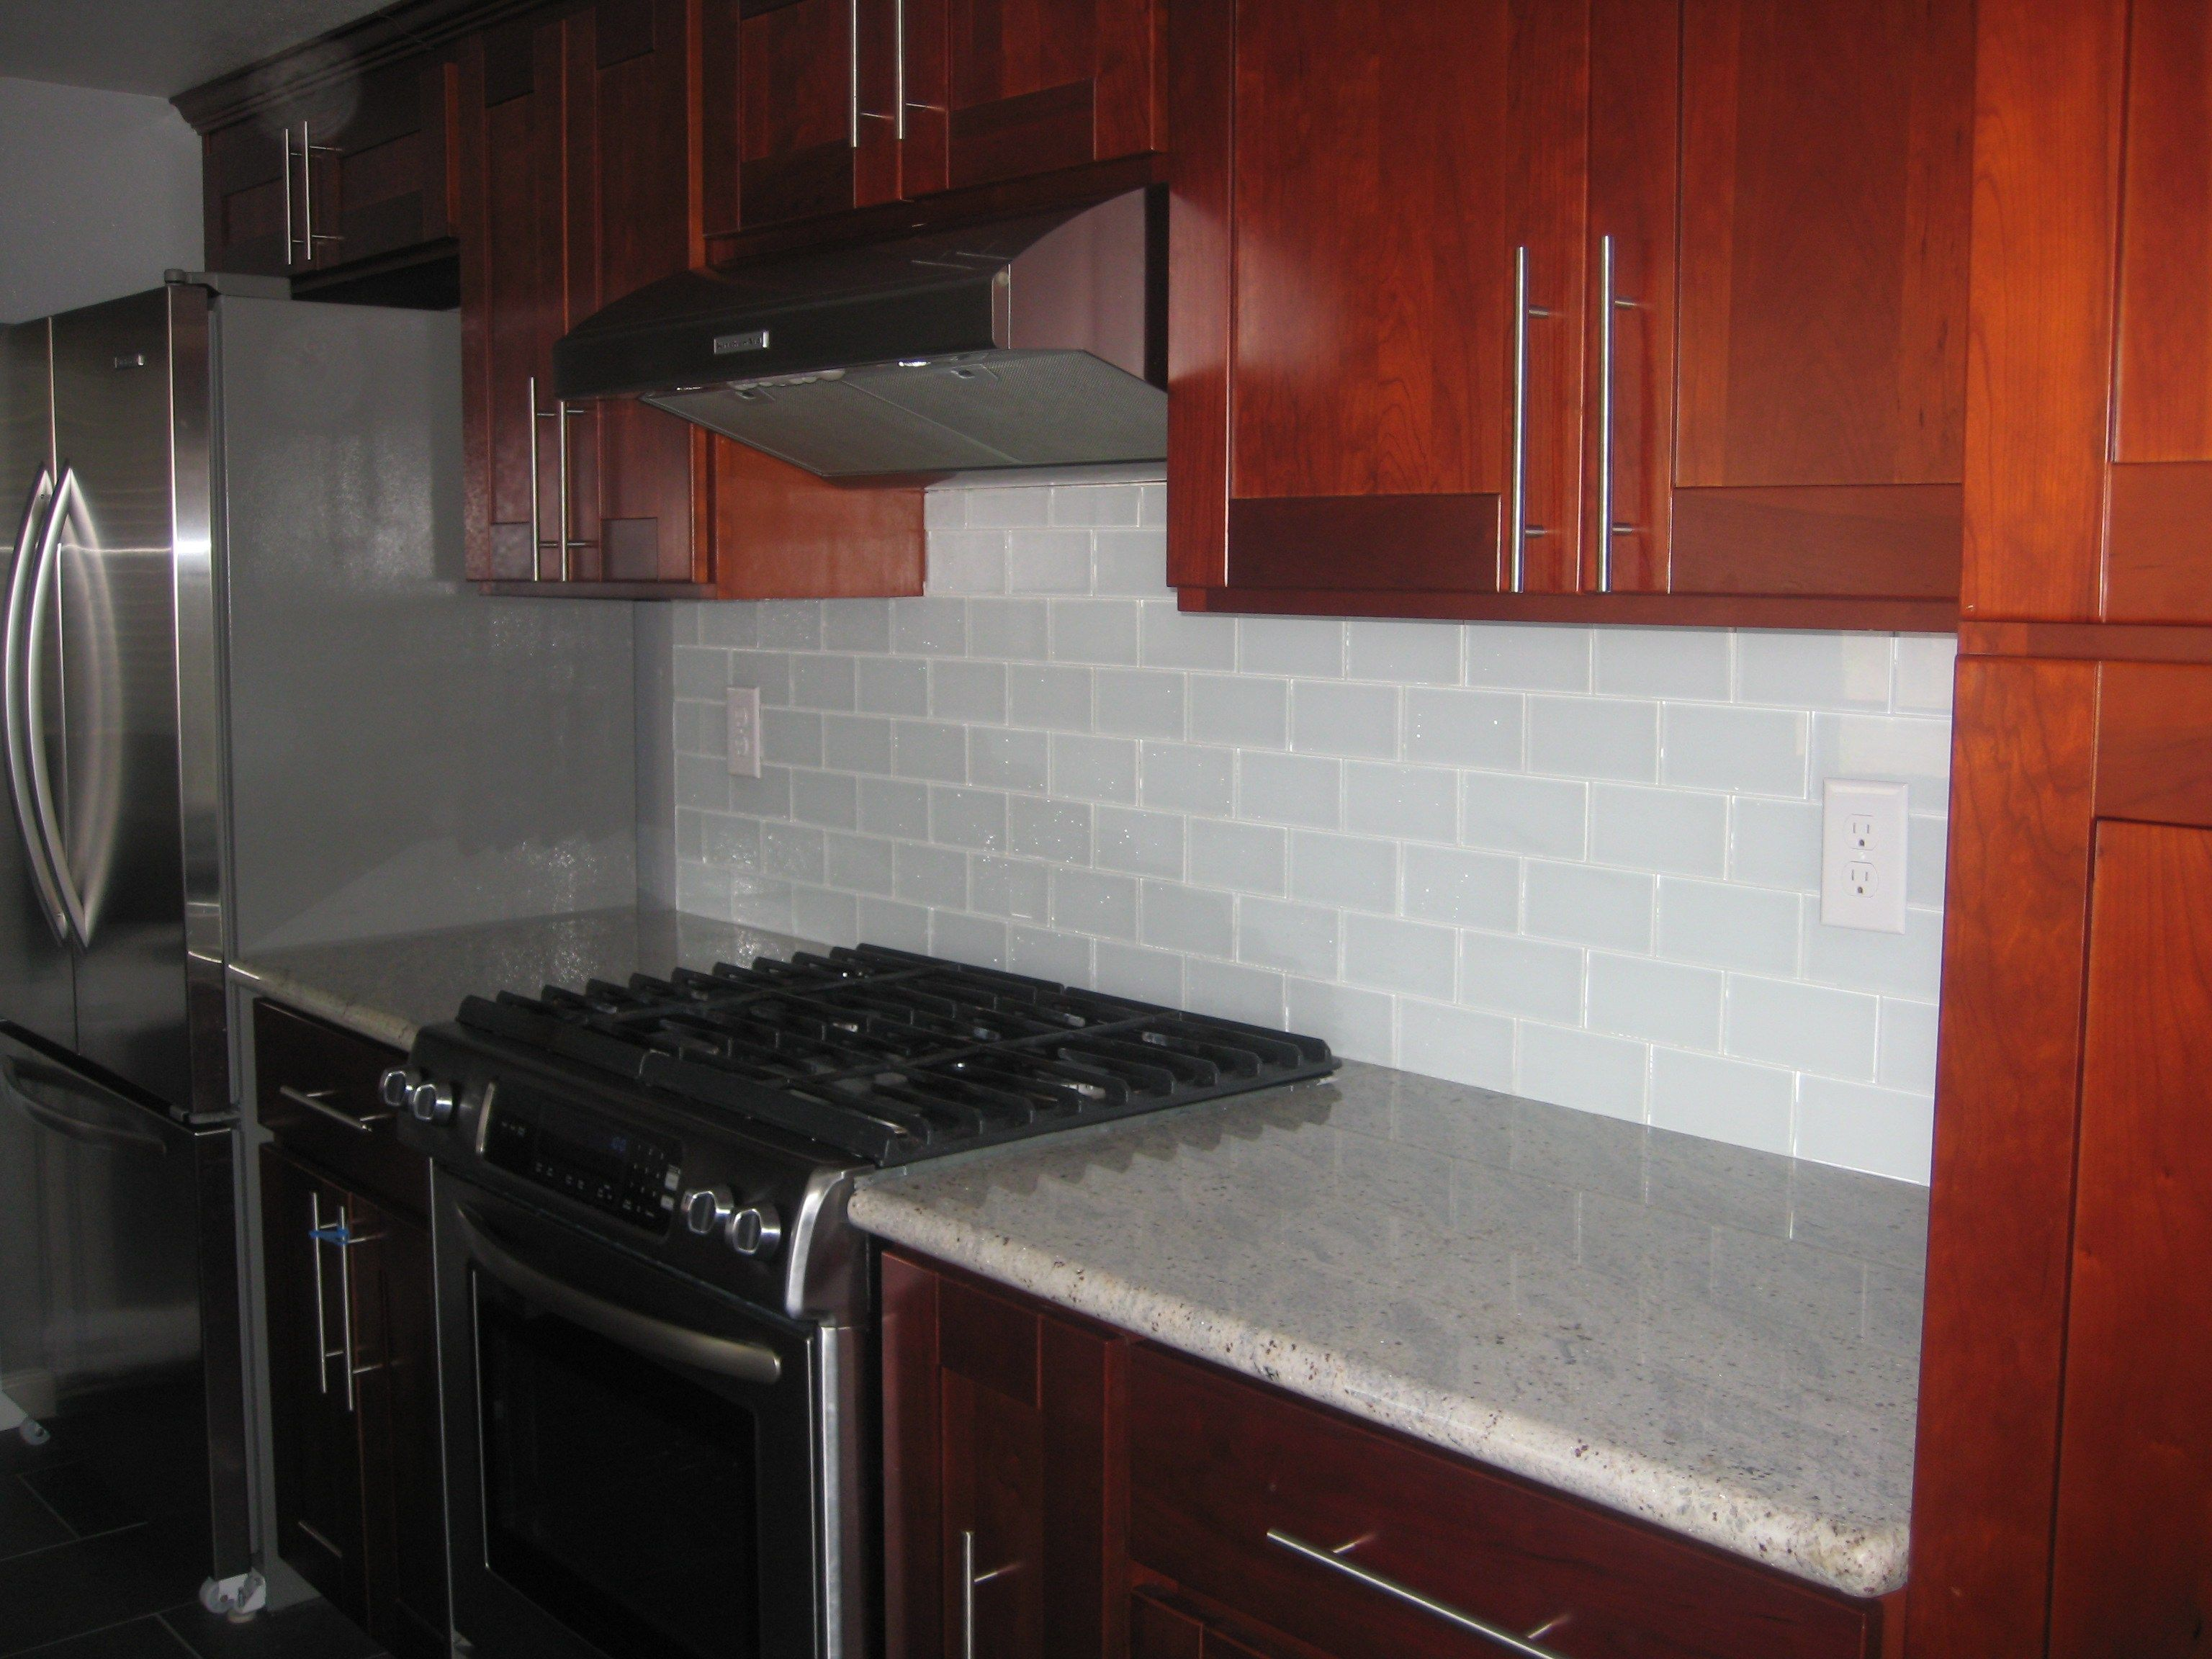 white glass subway tile contemporary kitchen backsplash subway tile ...